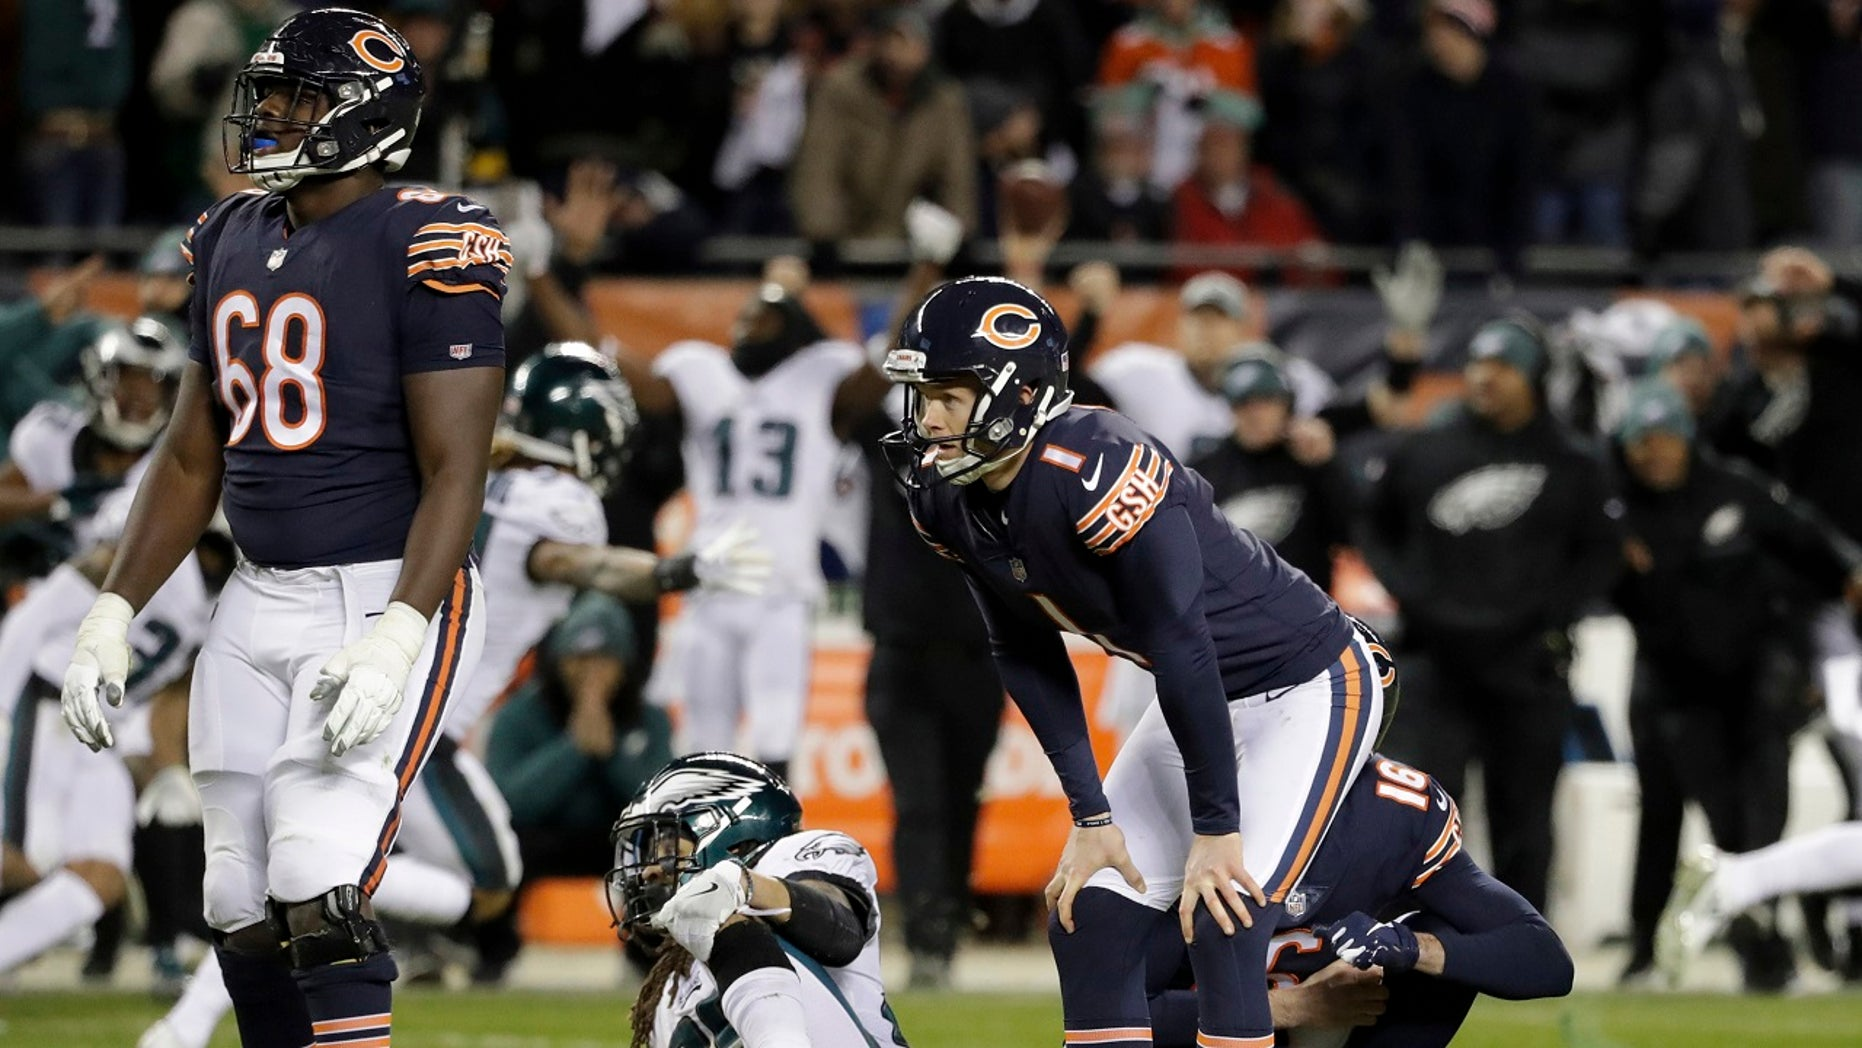 """Chicago Bear's kicker Cody Parkey (1) responds after missing out on a field goal at the end of the team's NFL wild loss playoff loss to the Philadelphia Eagles in Chicago on January 6, 201<div class=""""e3lan e3lan-in-post1""""><script async src=""""//pagead2.googlesyndication.com/pagead/js/adsbygoogle.js""""></script> <!-- Text_Image --> <ins class=""""adsbygoogle""""      style=""""display:block""""      data-ad-client=""""ca-pub-7122614041285563""""      data-ad-slot=""""2268374881""""      data-ad-format=""""auto""""      data-full-width-responsive=""""true""""></ins> <script> (adsbygoogle = window.adsbygoogle    []).push({}); </script></div>9. (Associated Press)"""